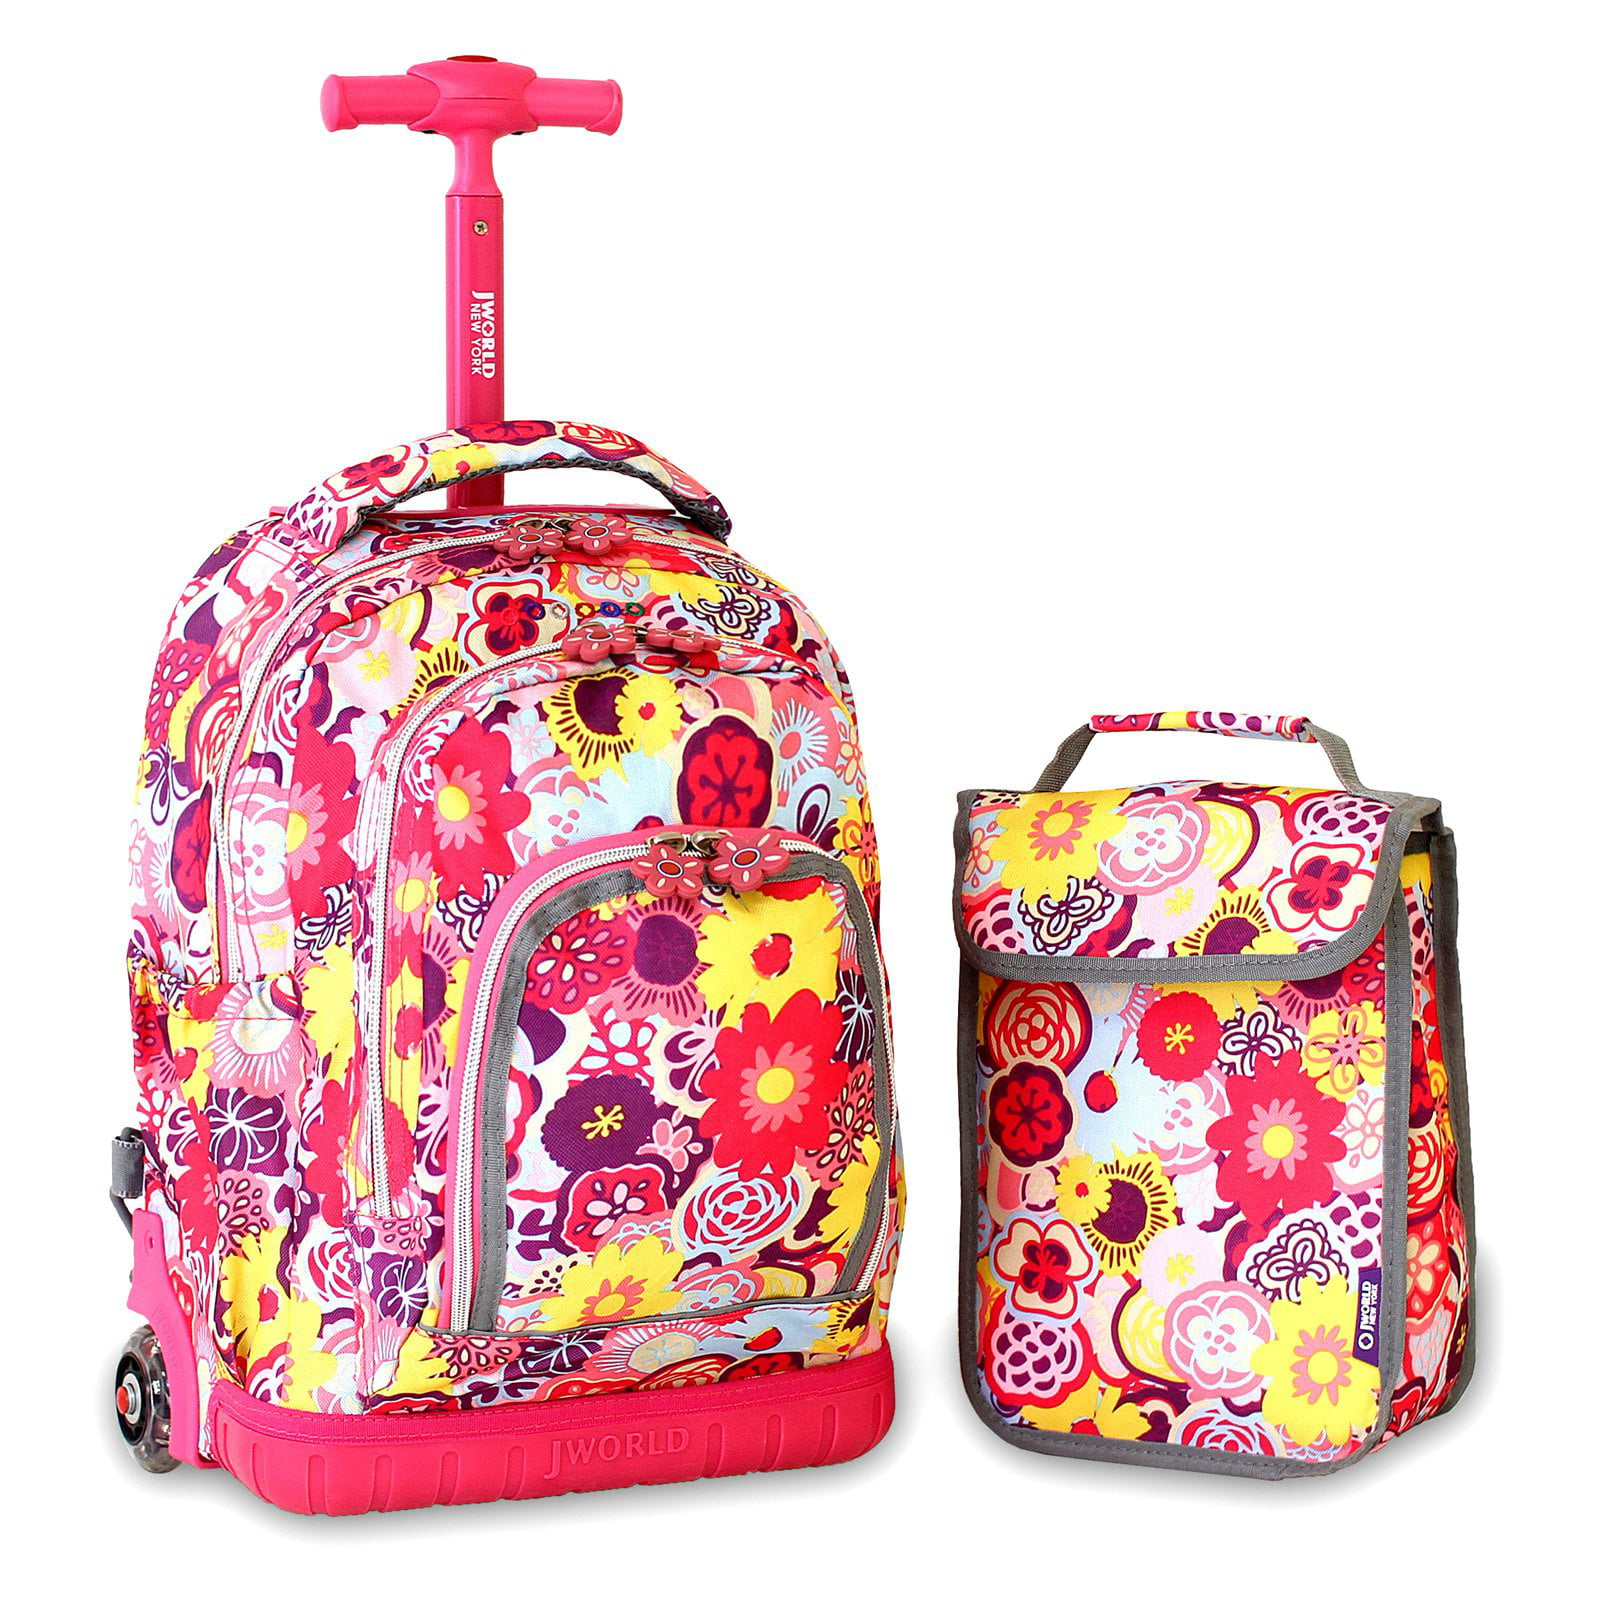 J World Lollipop Rolling Backpack with Lunch Bag - Walmart.com